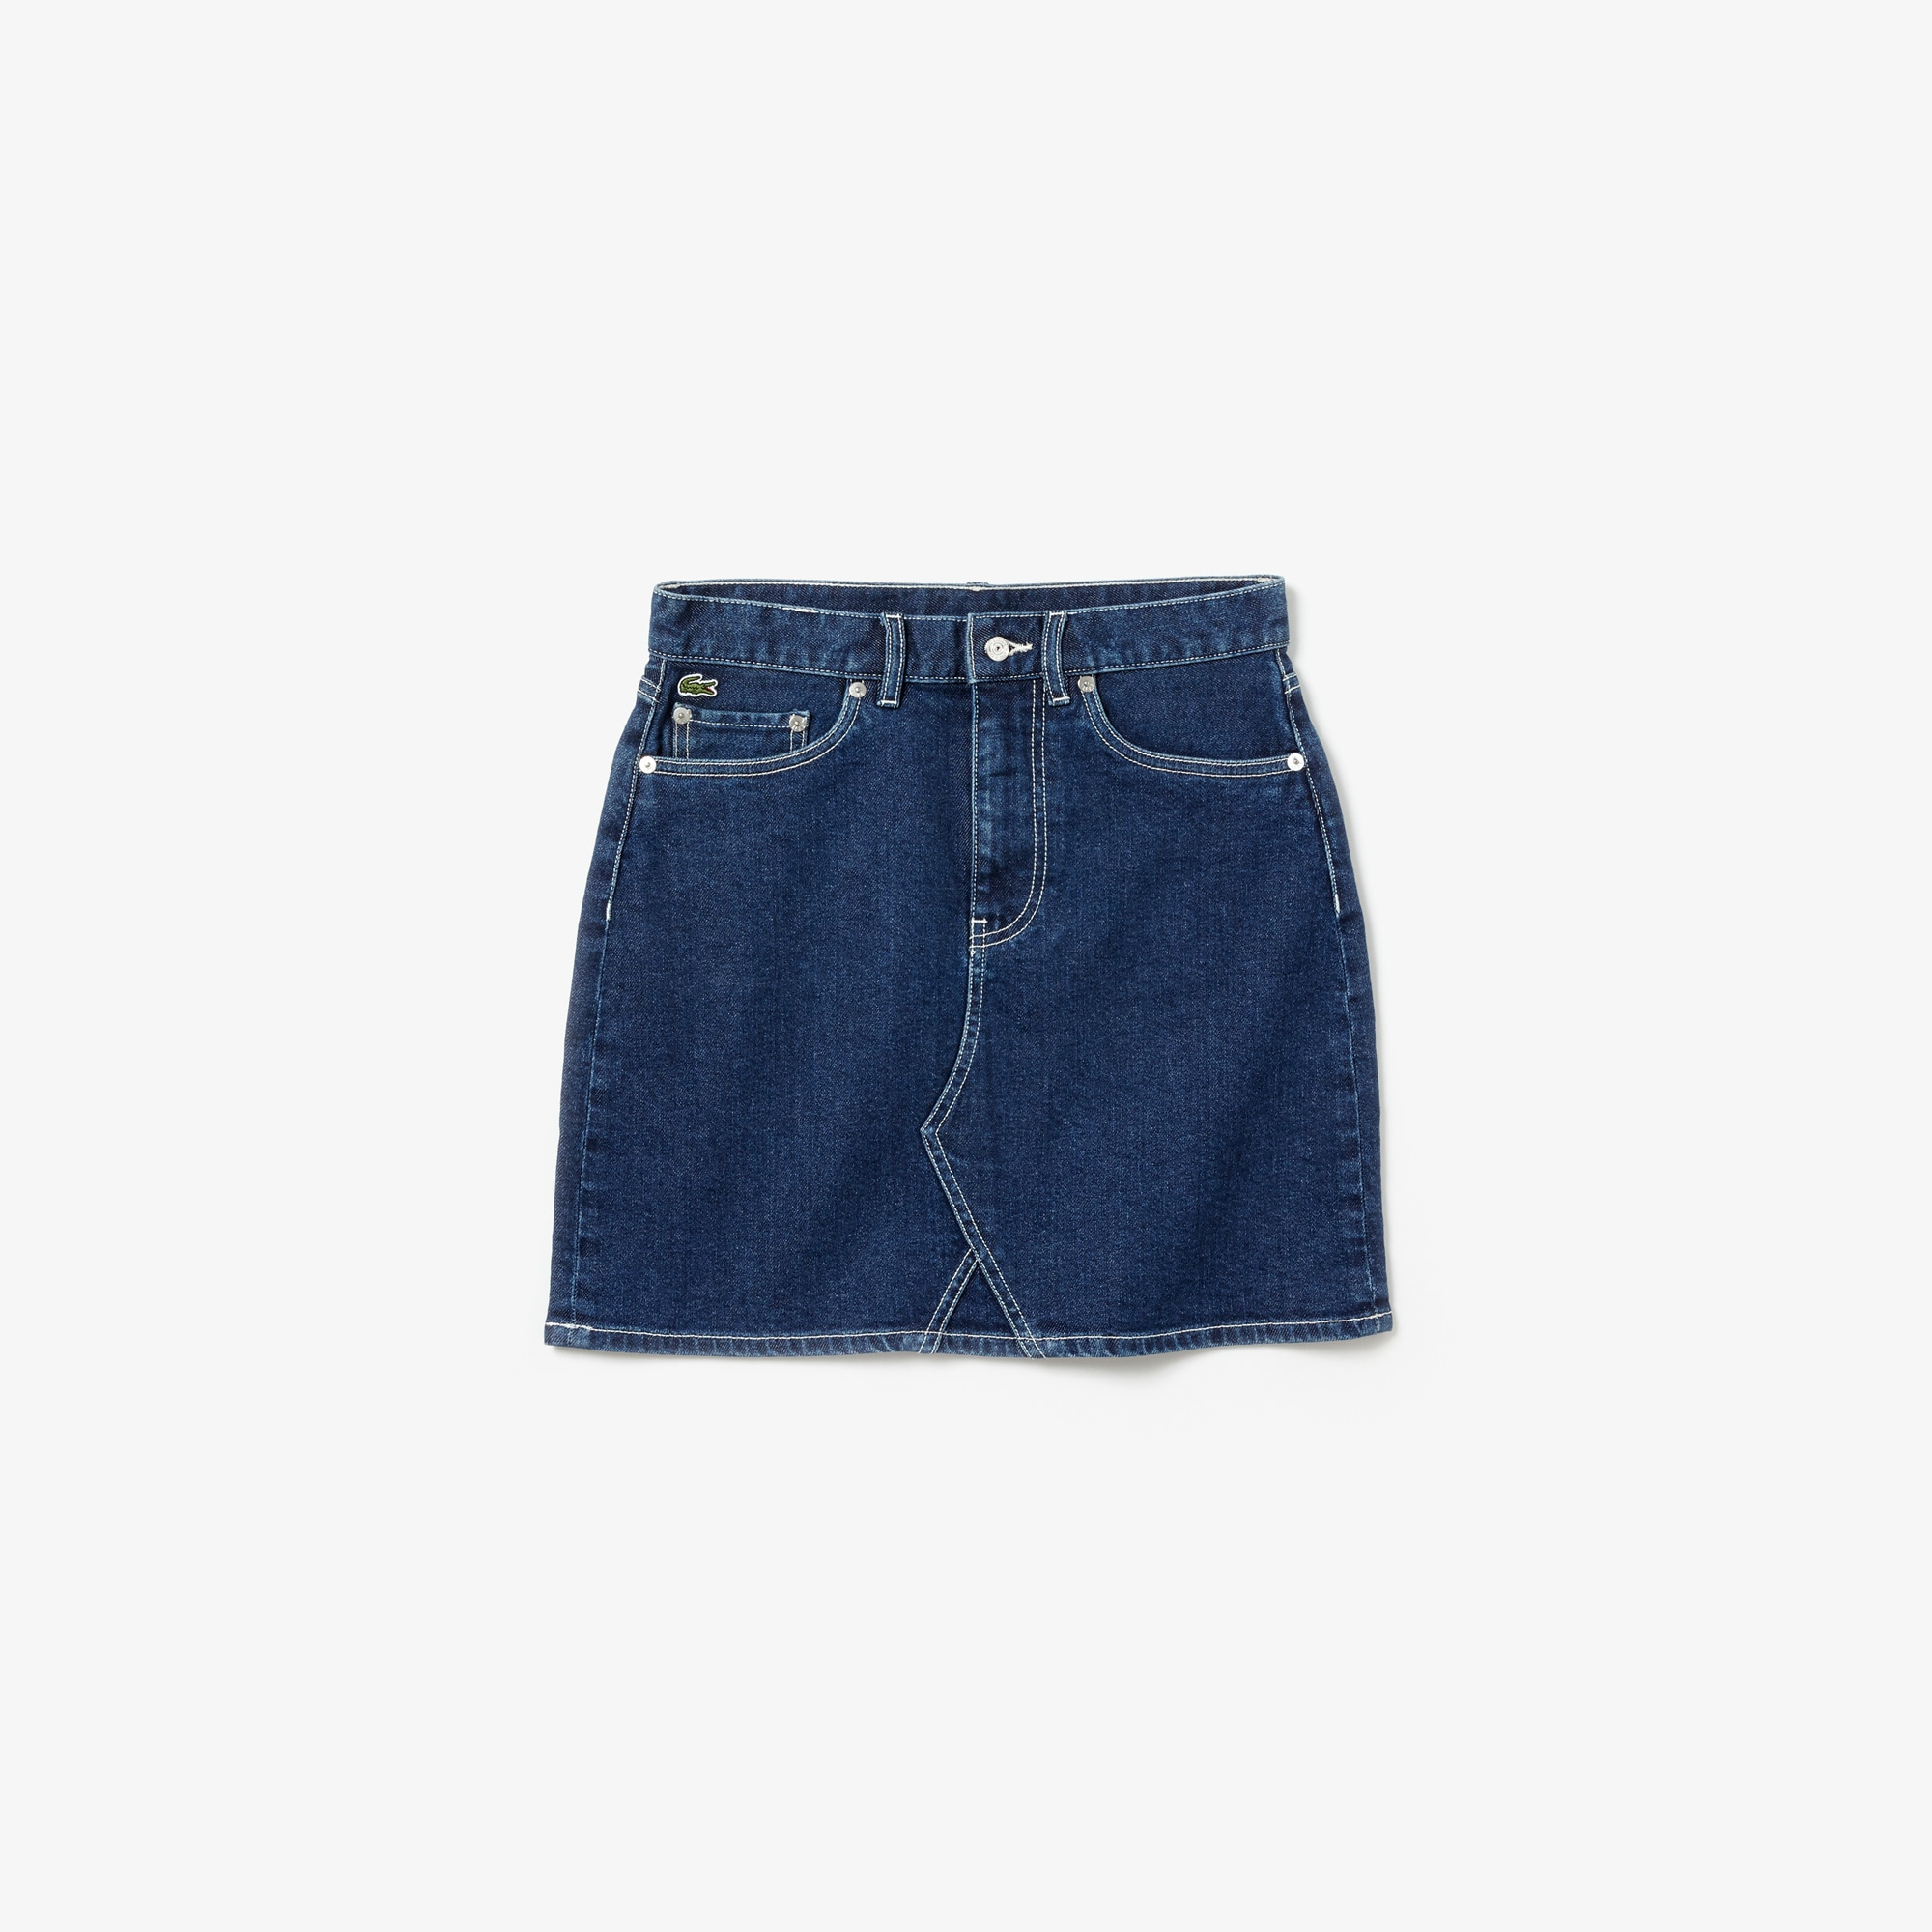 Women's LIVE Denim Skirt